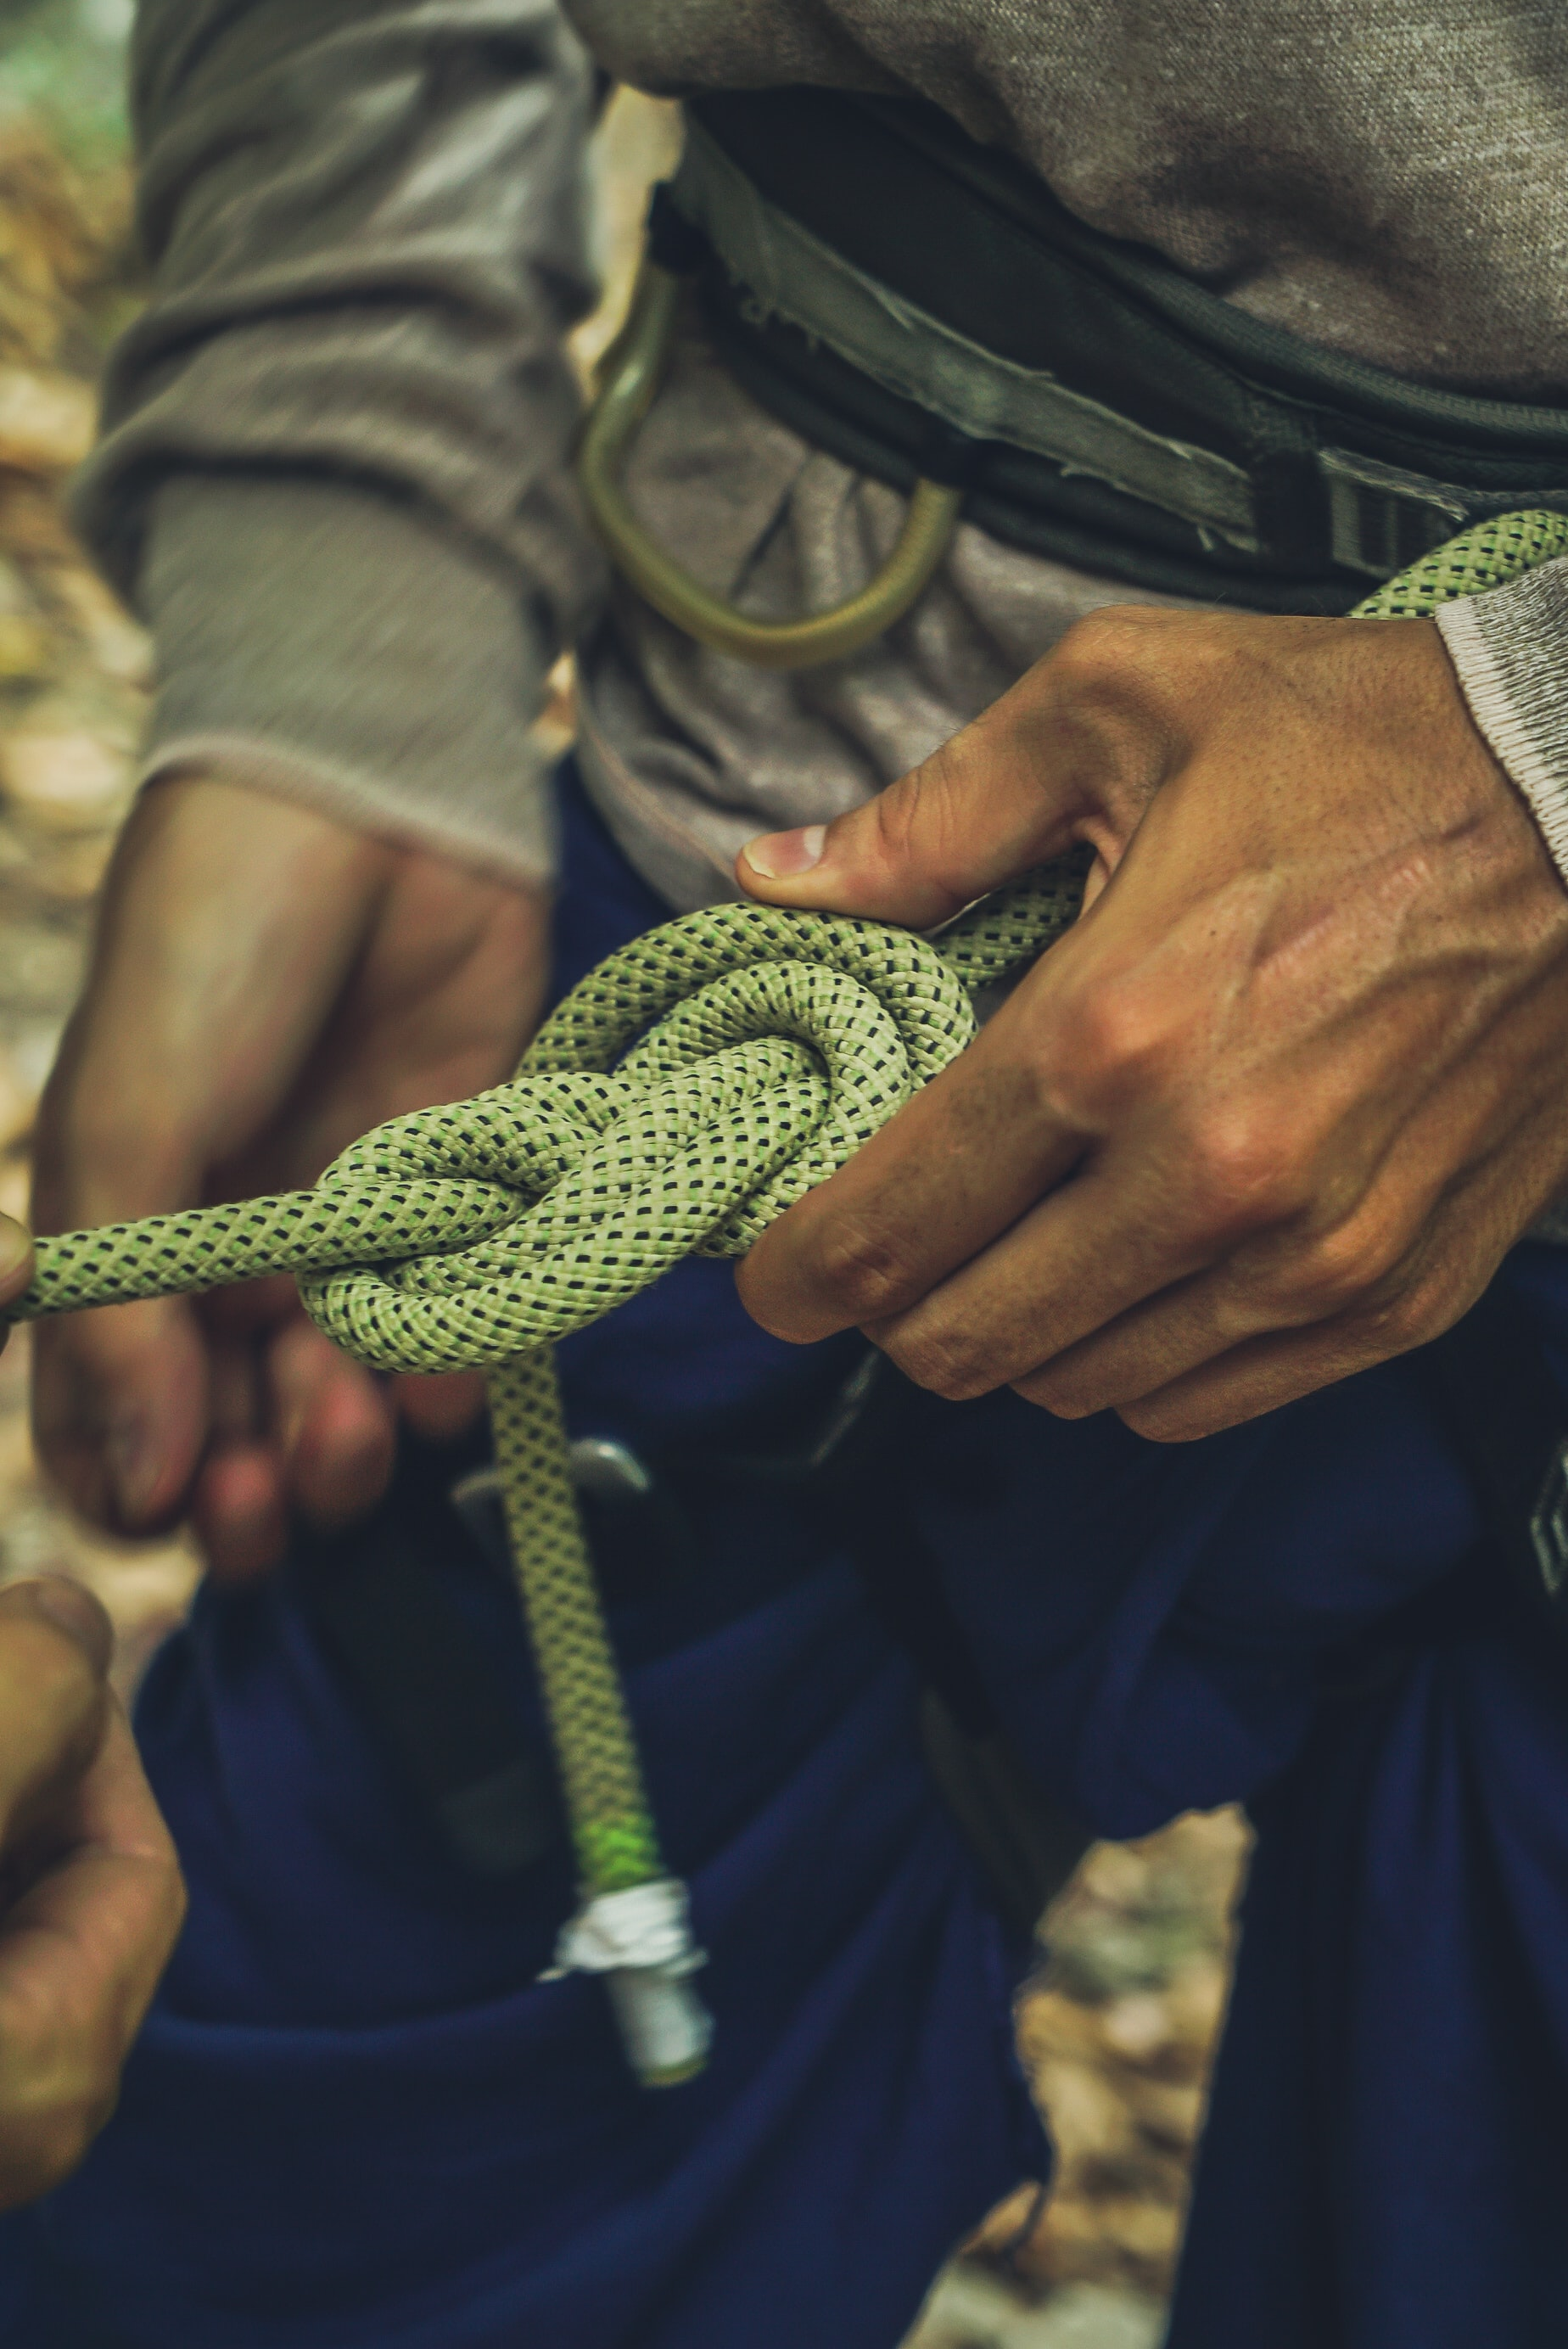 securing with a knot the climbing rope!